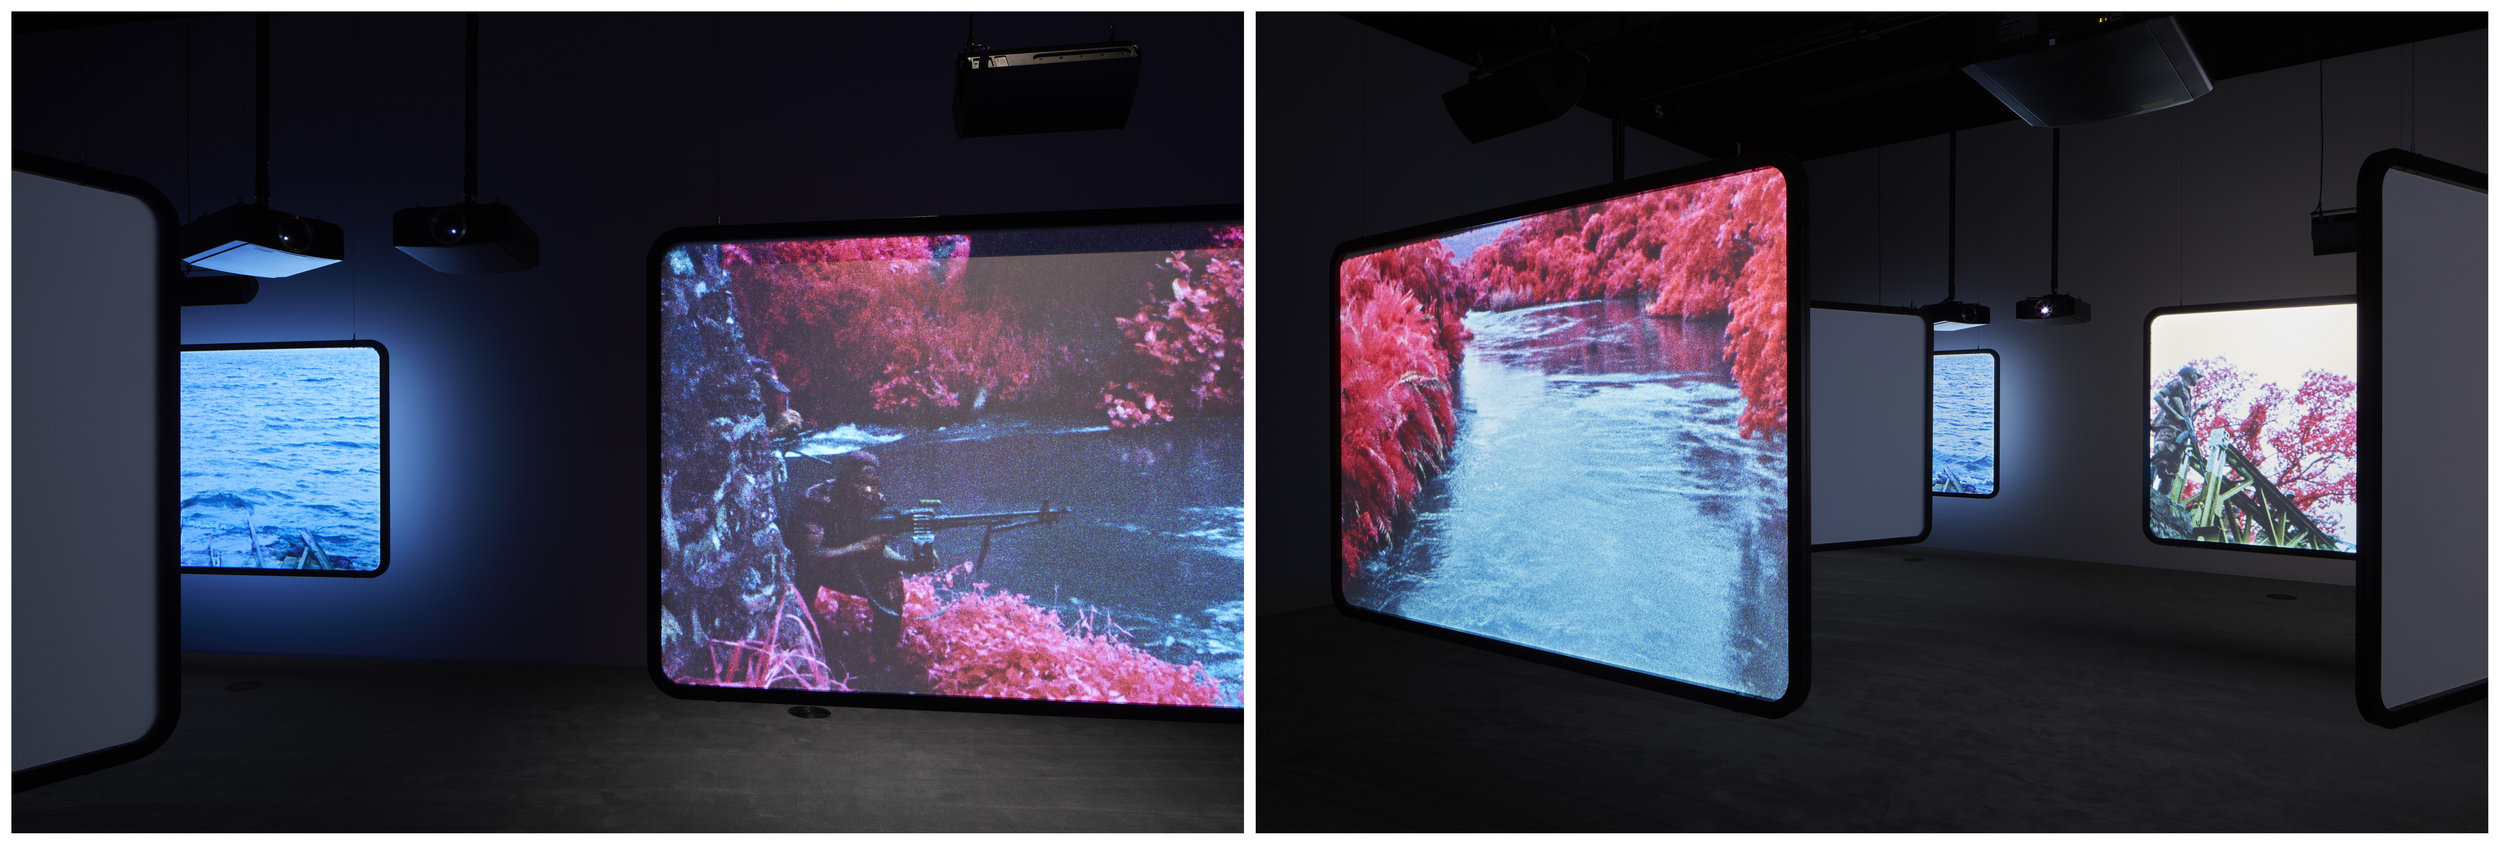 20190214 - Catherine Wagner - CW_RichardMosse_diptych.jpg